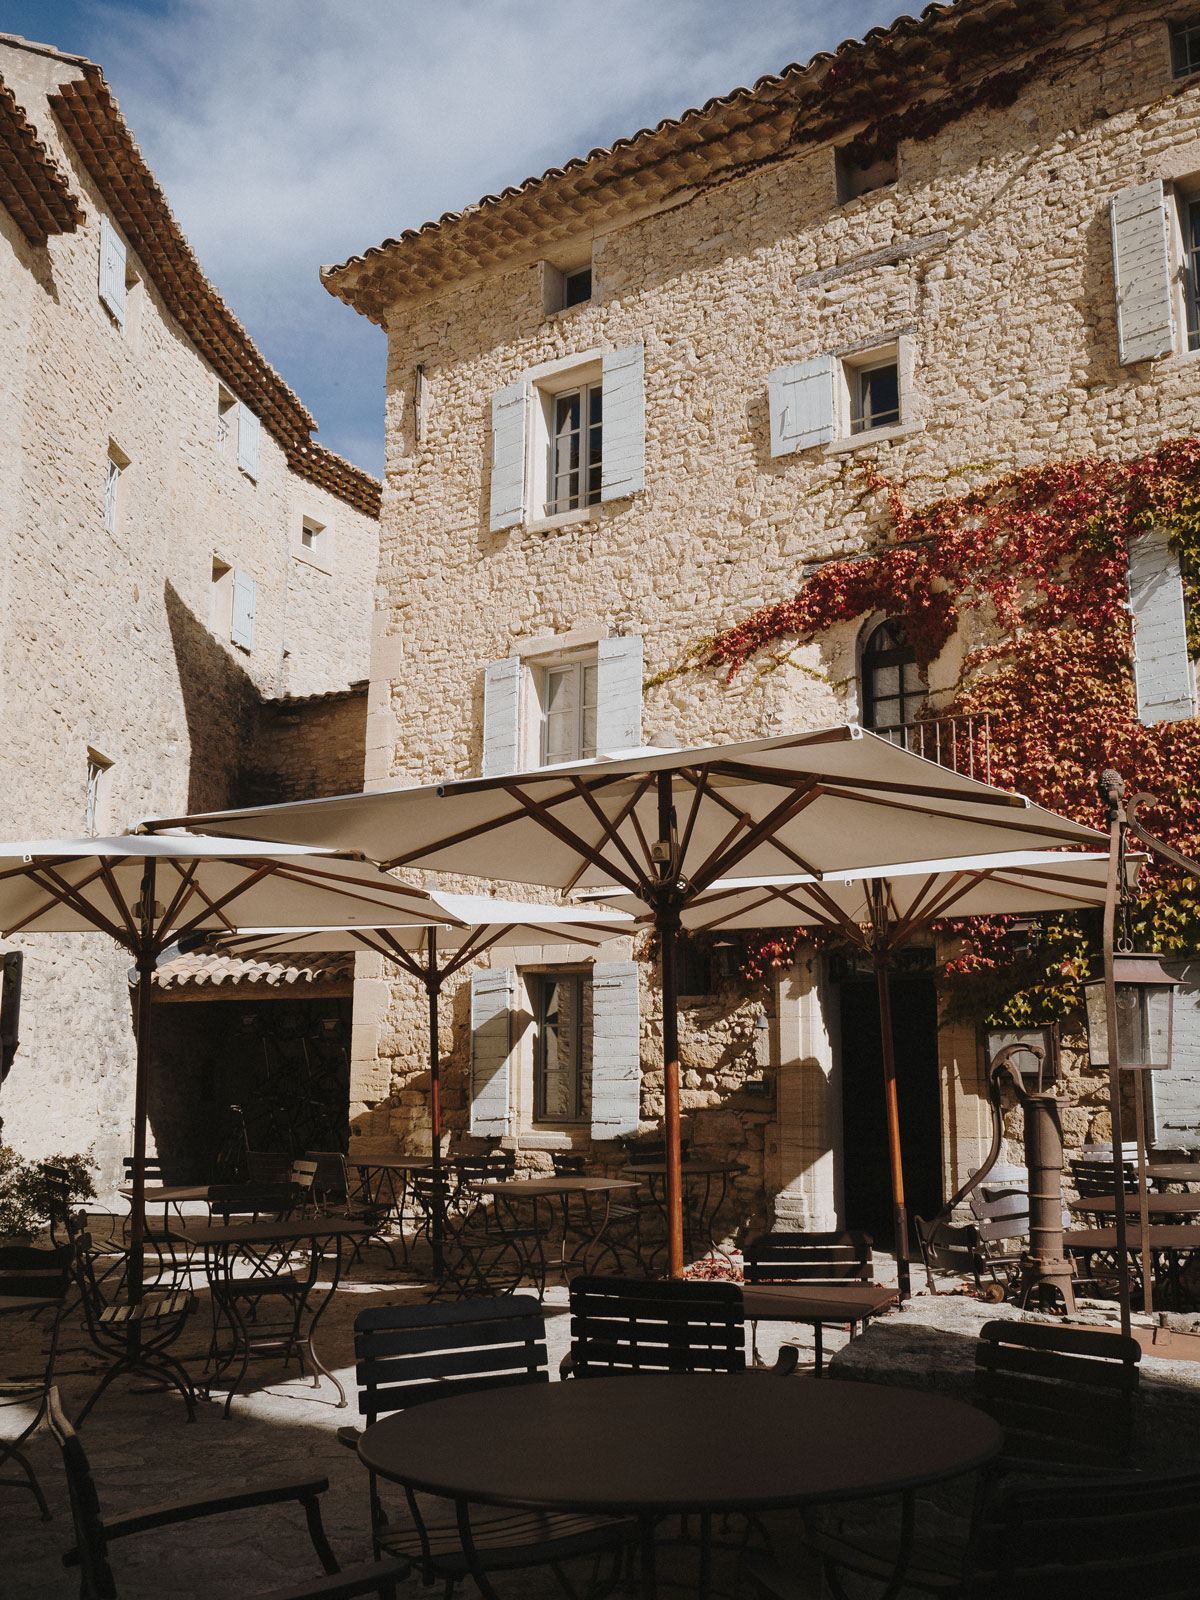 hotel-crillon-le-brave-south-france-83